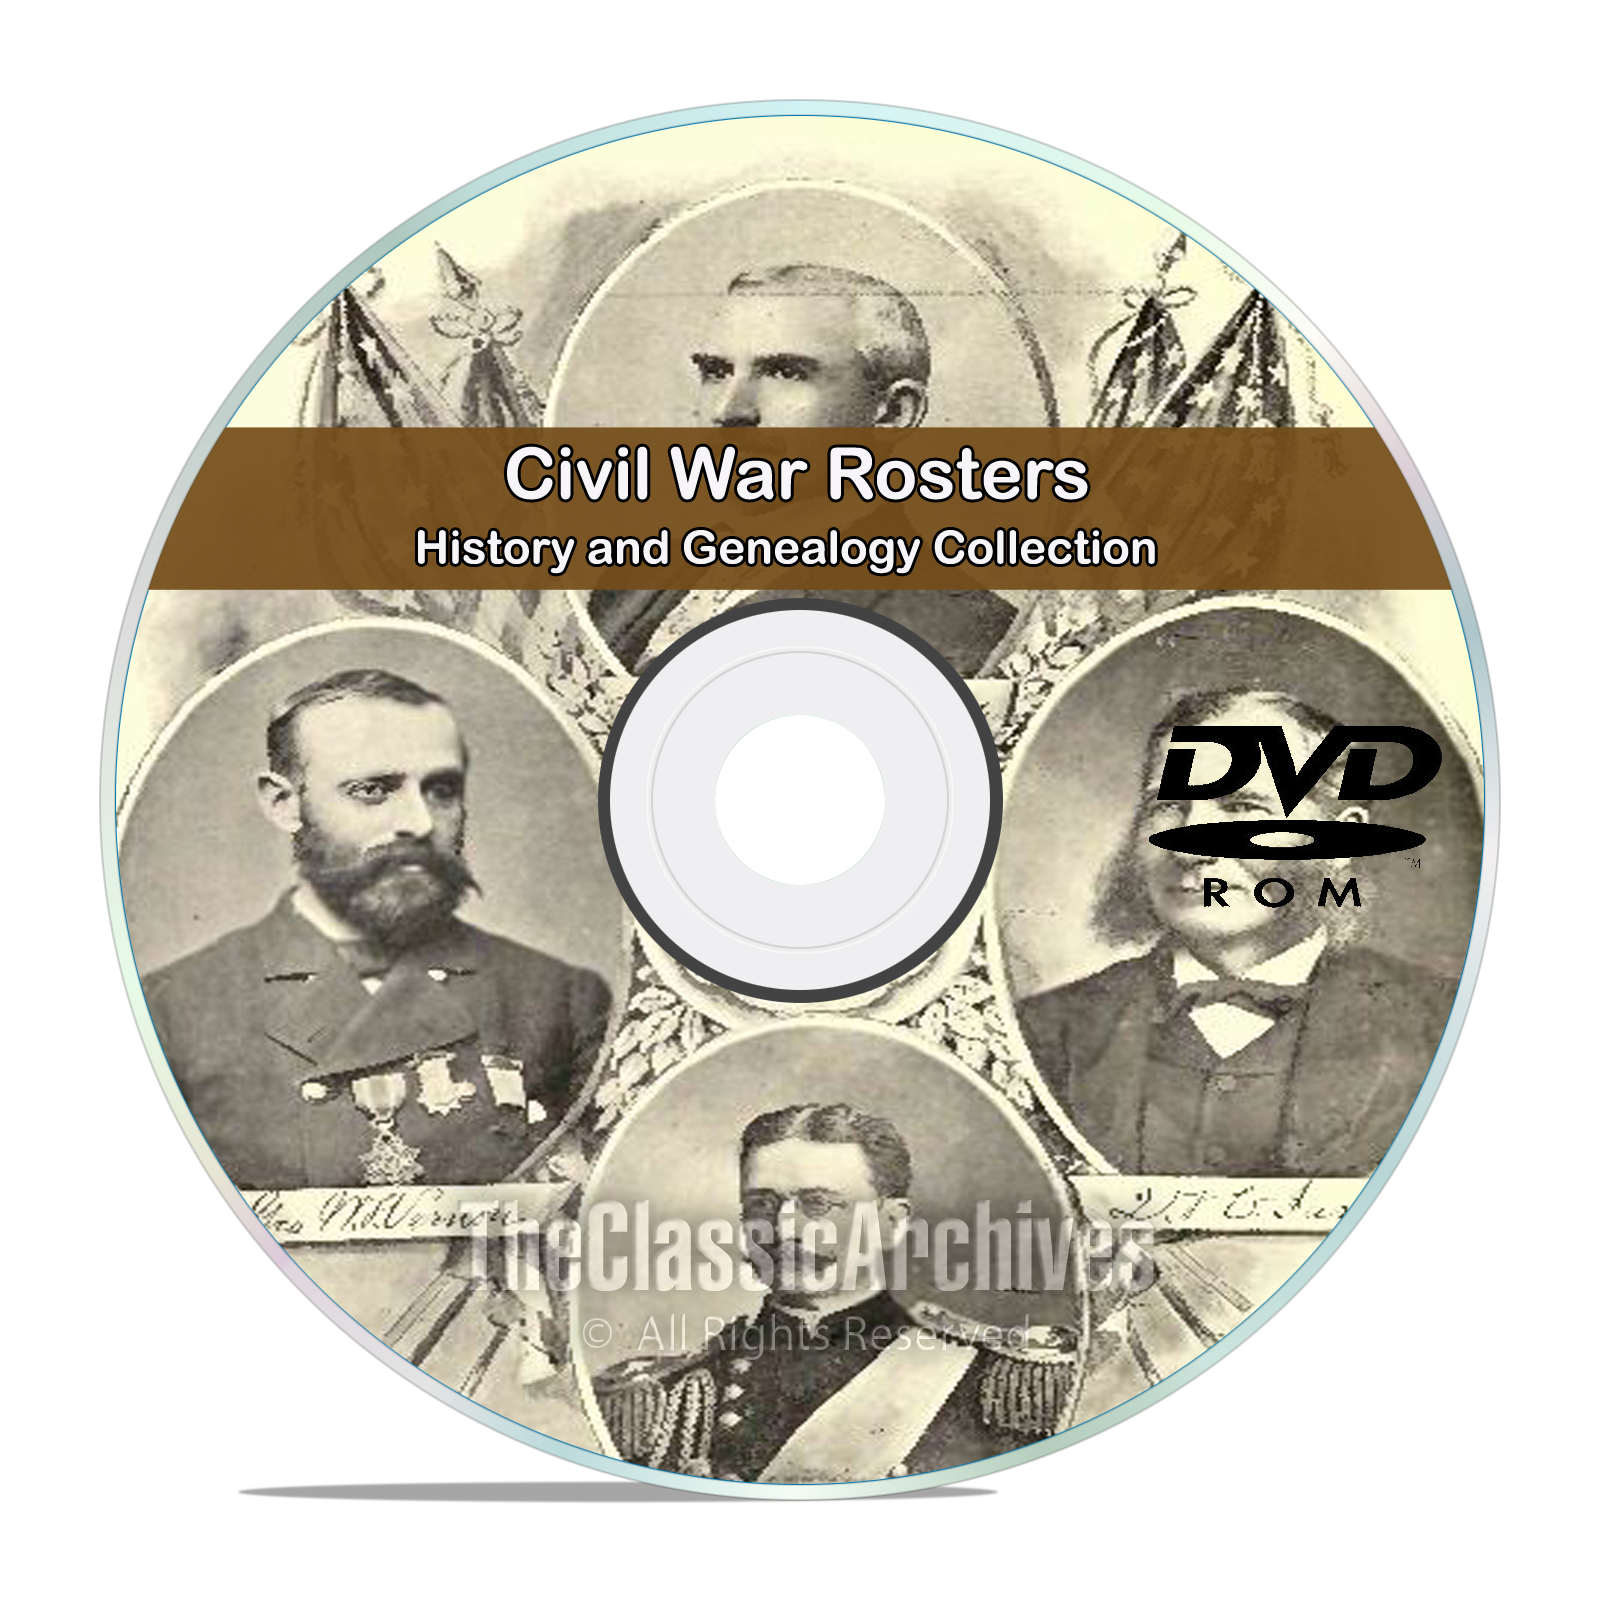 Civil War Rosters, 77 Classic Books, History and Genealogy, Names on DVD